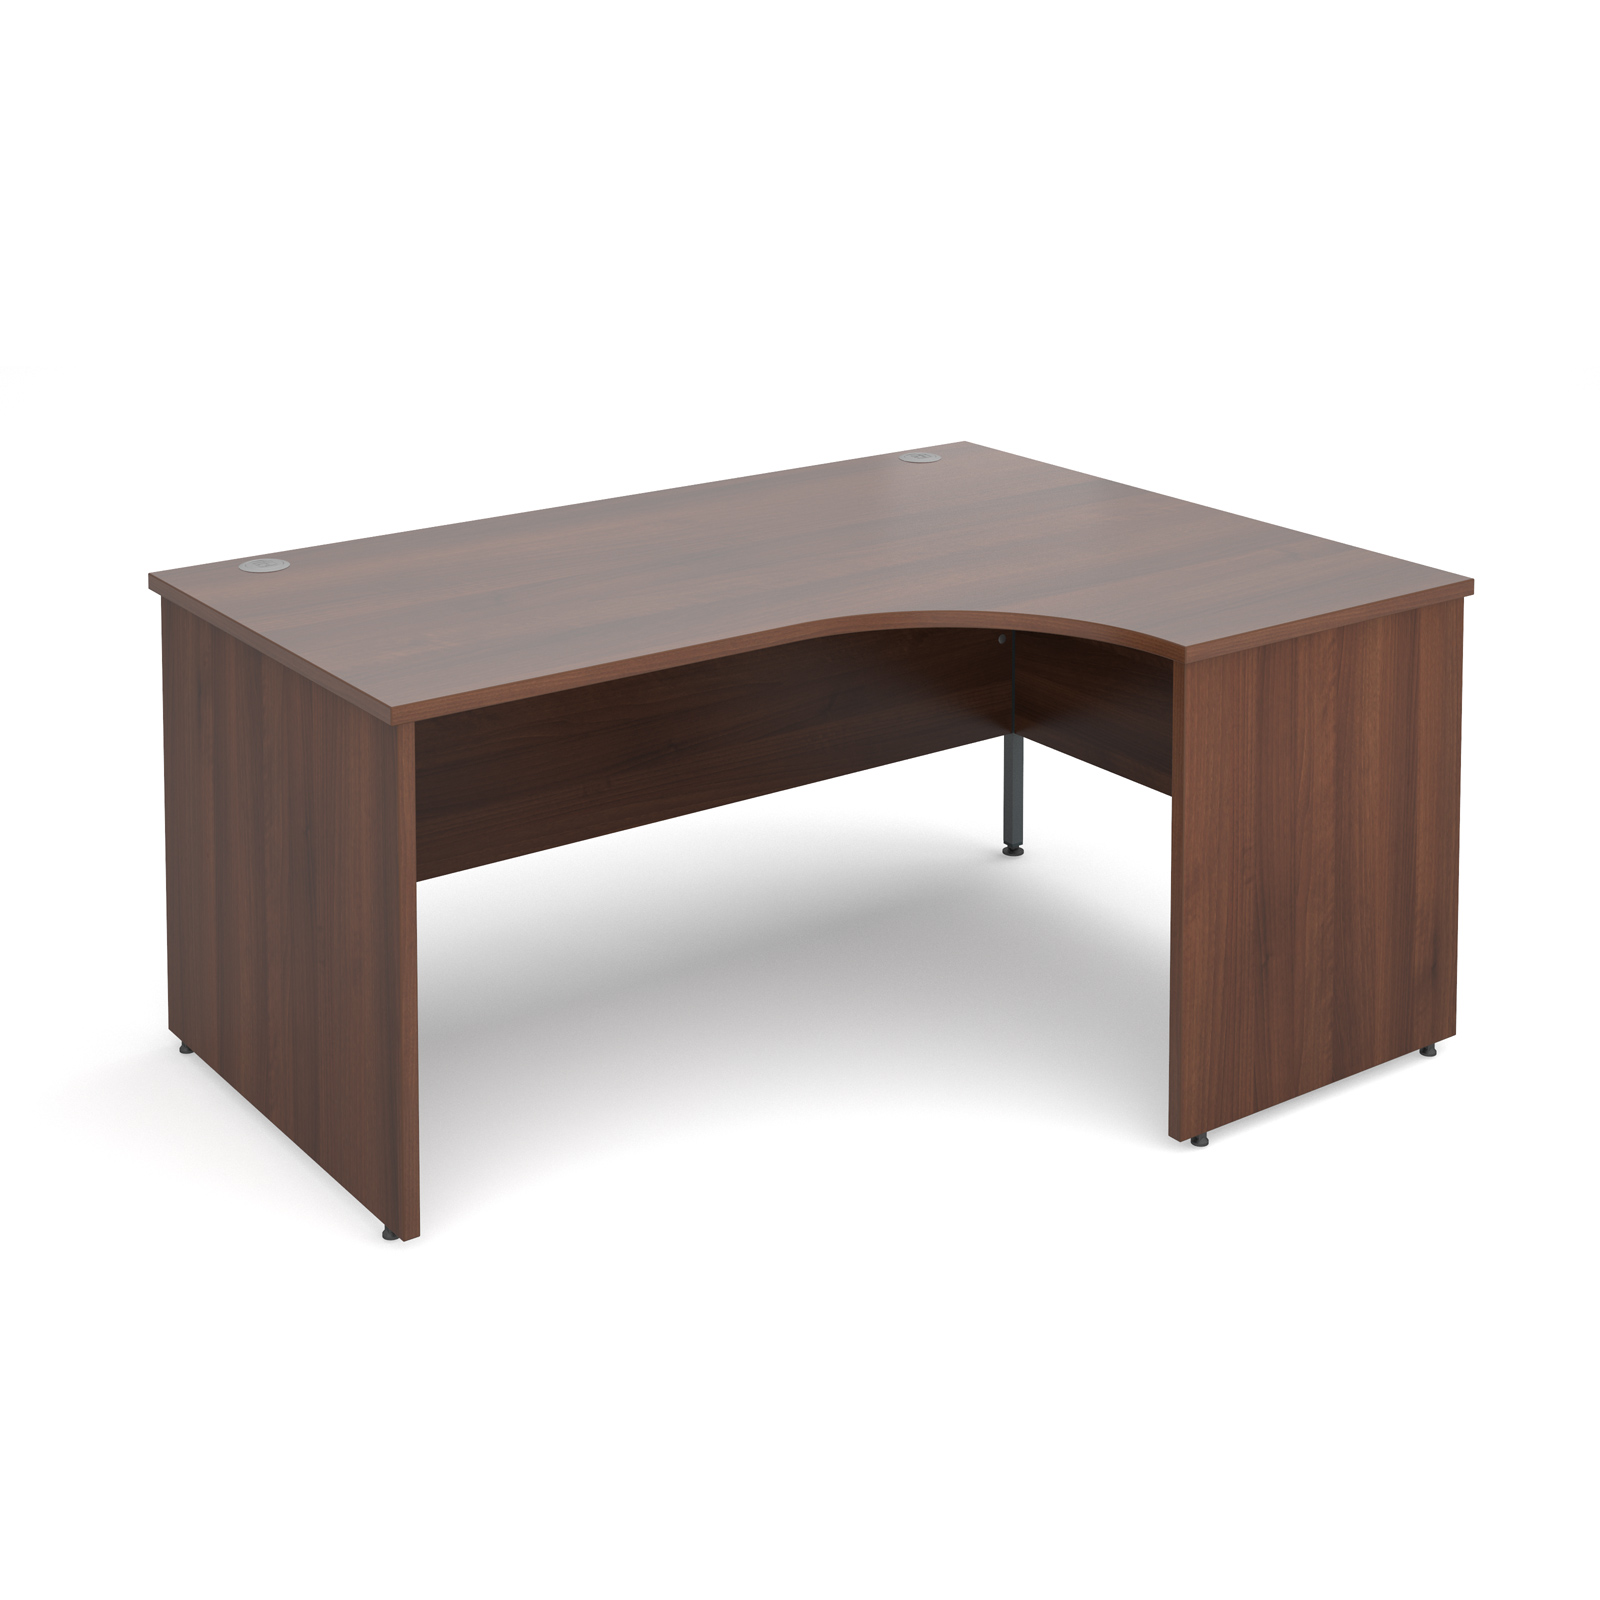 Maestro 25 Pl Right Hand Ergonomic Desk 1600mm - Walnut Panel Leg Design